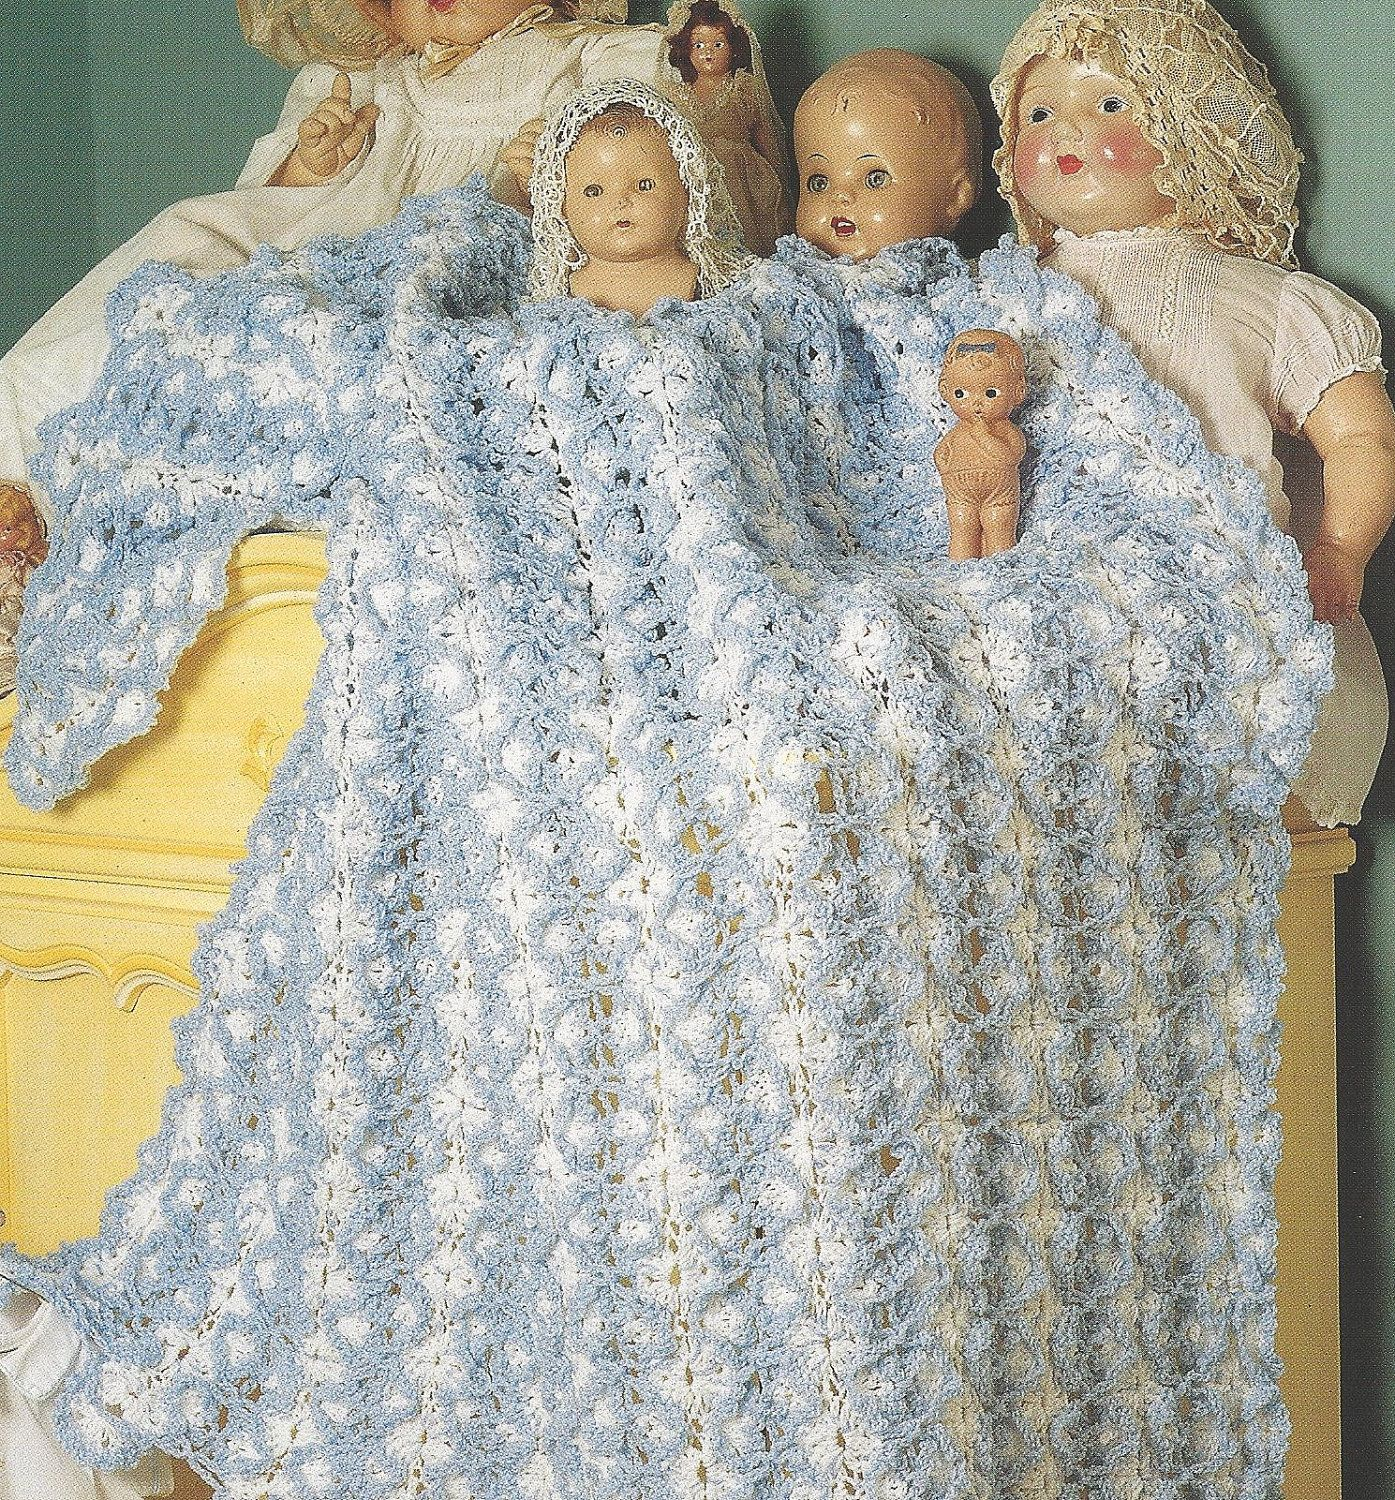 Crochet Baby Afghan Pattern - FRILLY RUFFLED Baby Blanket Original ...